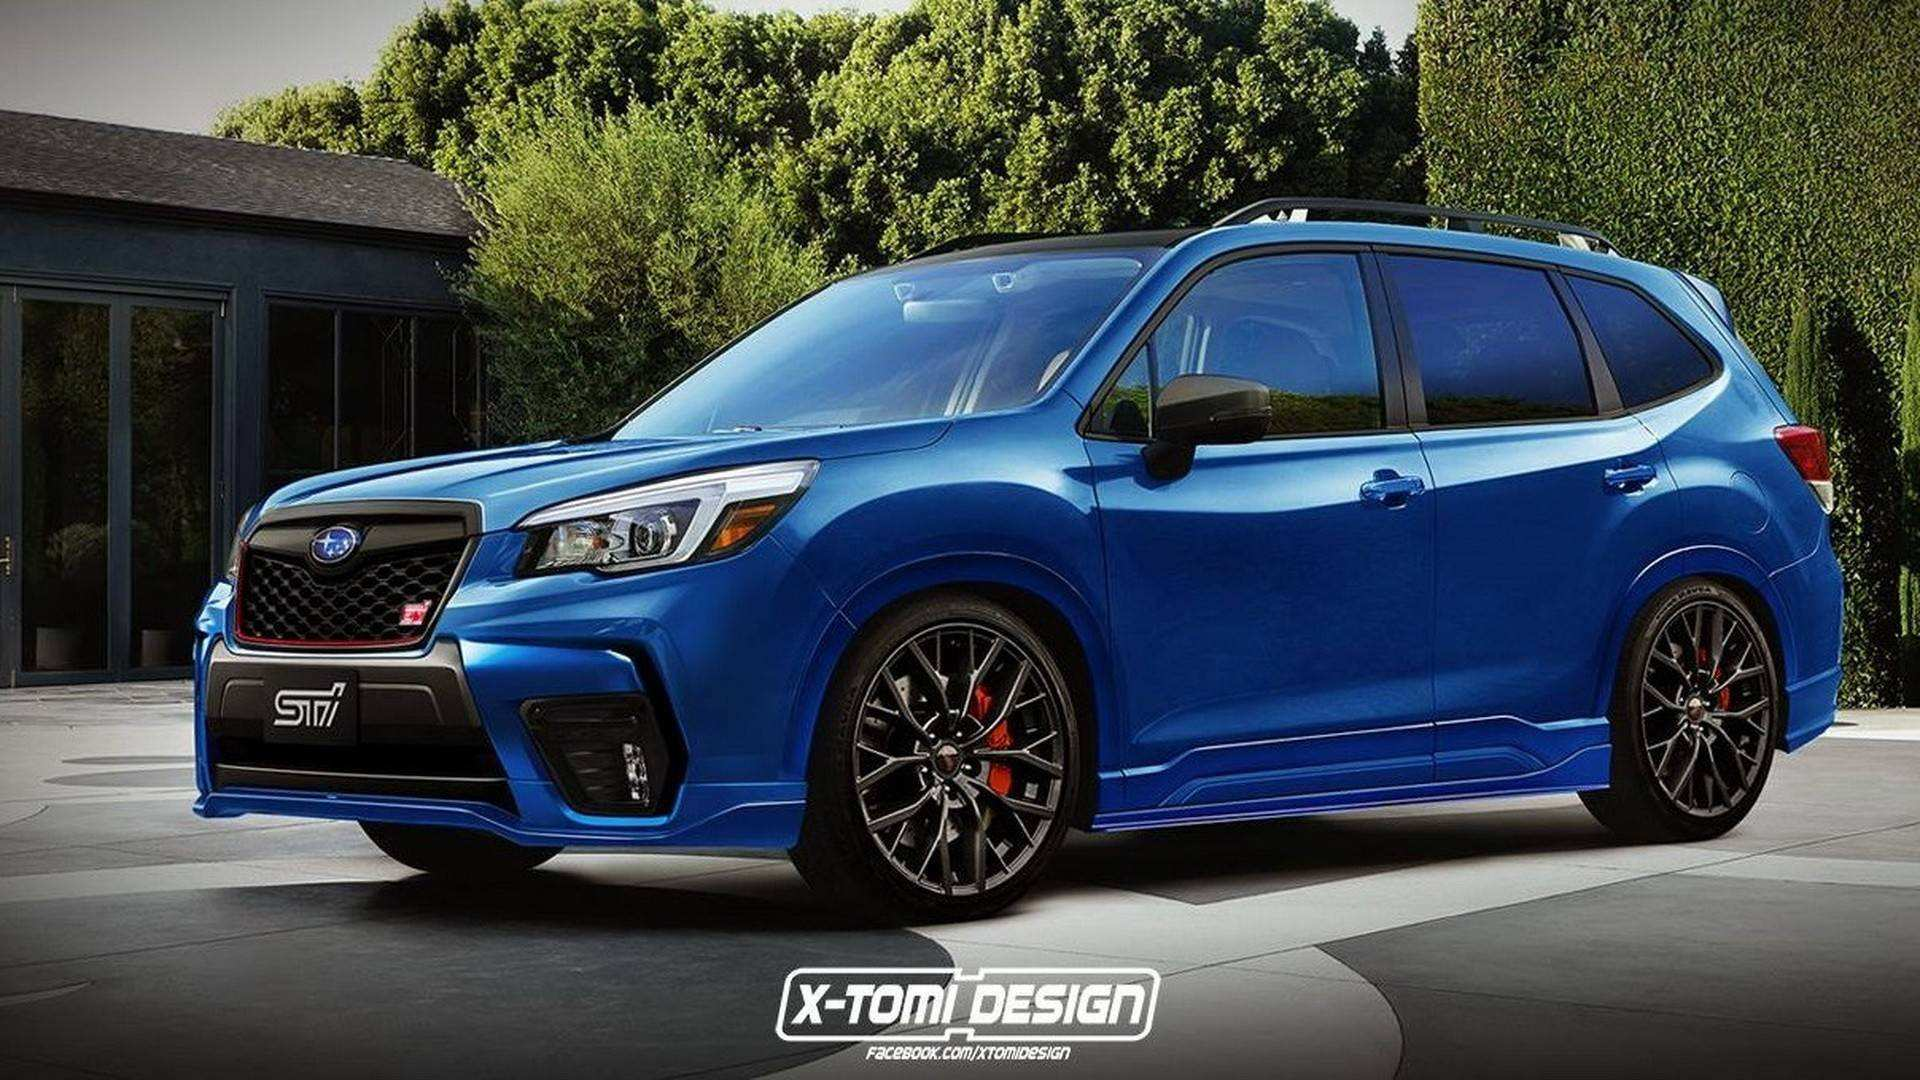 61 Great Subaru Forester 2020 Japan Redesign and Concept with Subaru Forester 2020 Japan